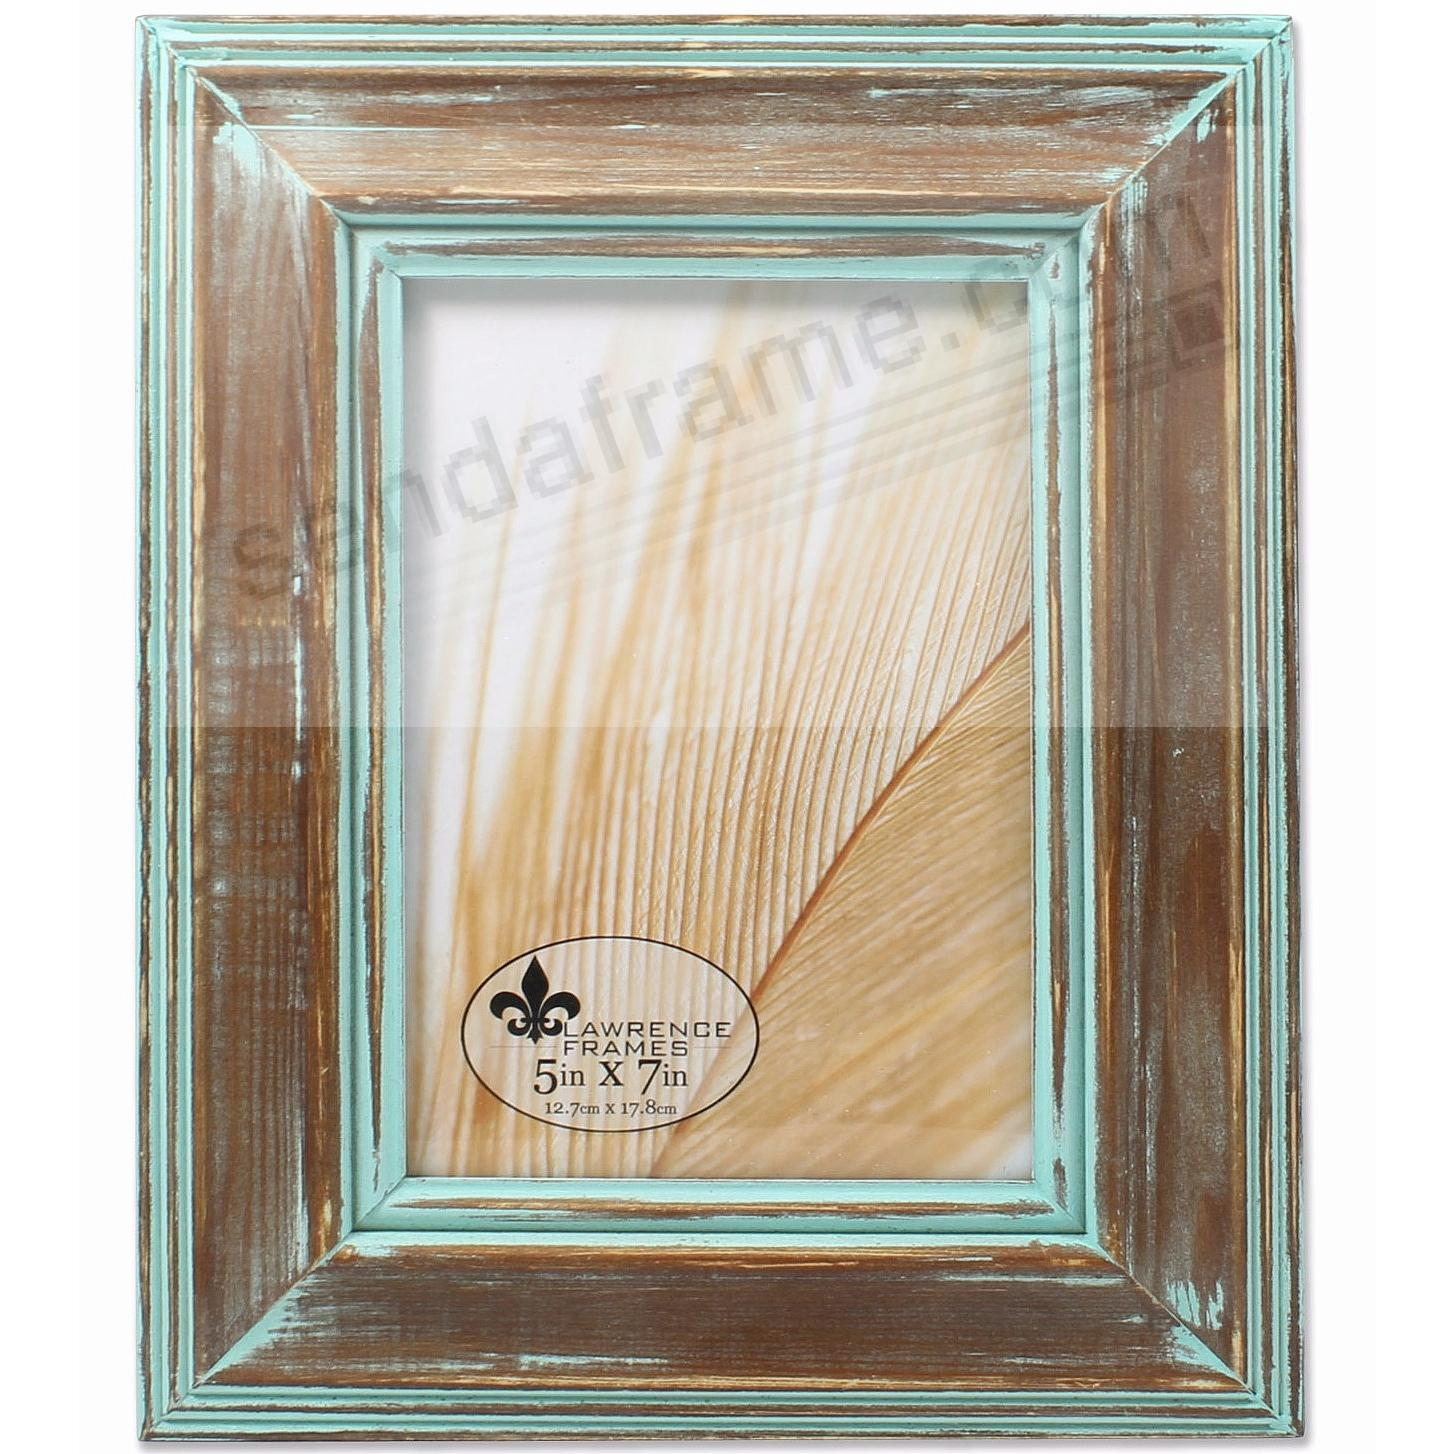 Weathered Wood with VERDIGRIS PATINA WASH 5x7 frame by Lawrence®